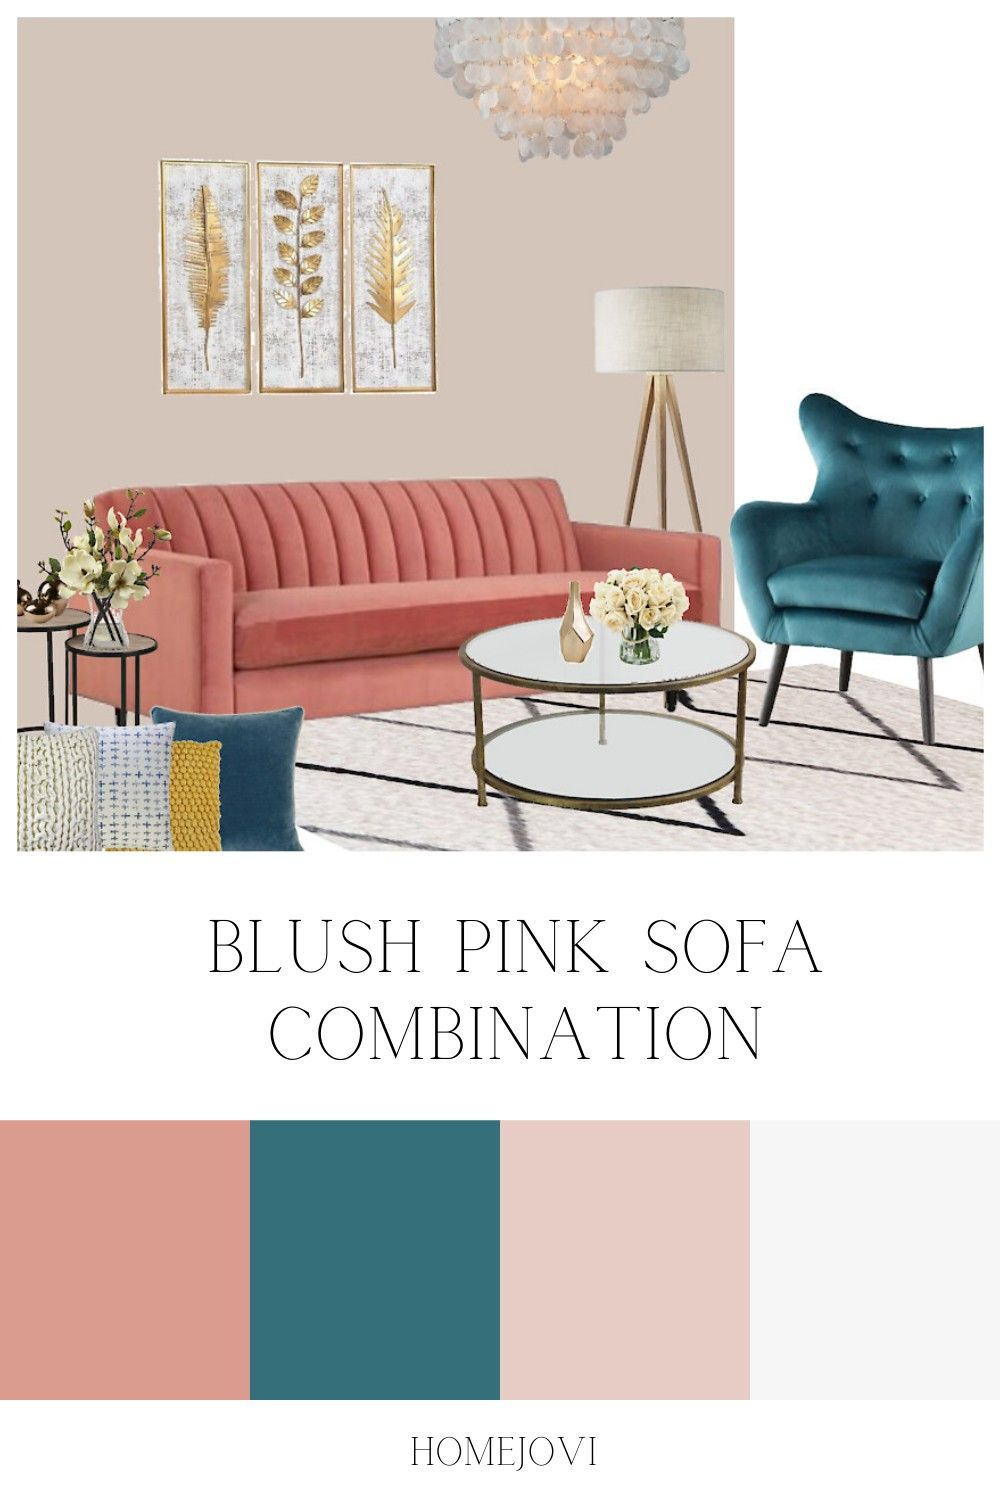 Pink And Teal Sofa Color Combination In 2020 Living Room Color Combination Teal Sofa Living Room Teal Couch Living Room #teal #and #pink #living #room